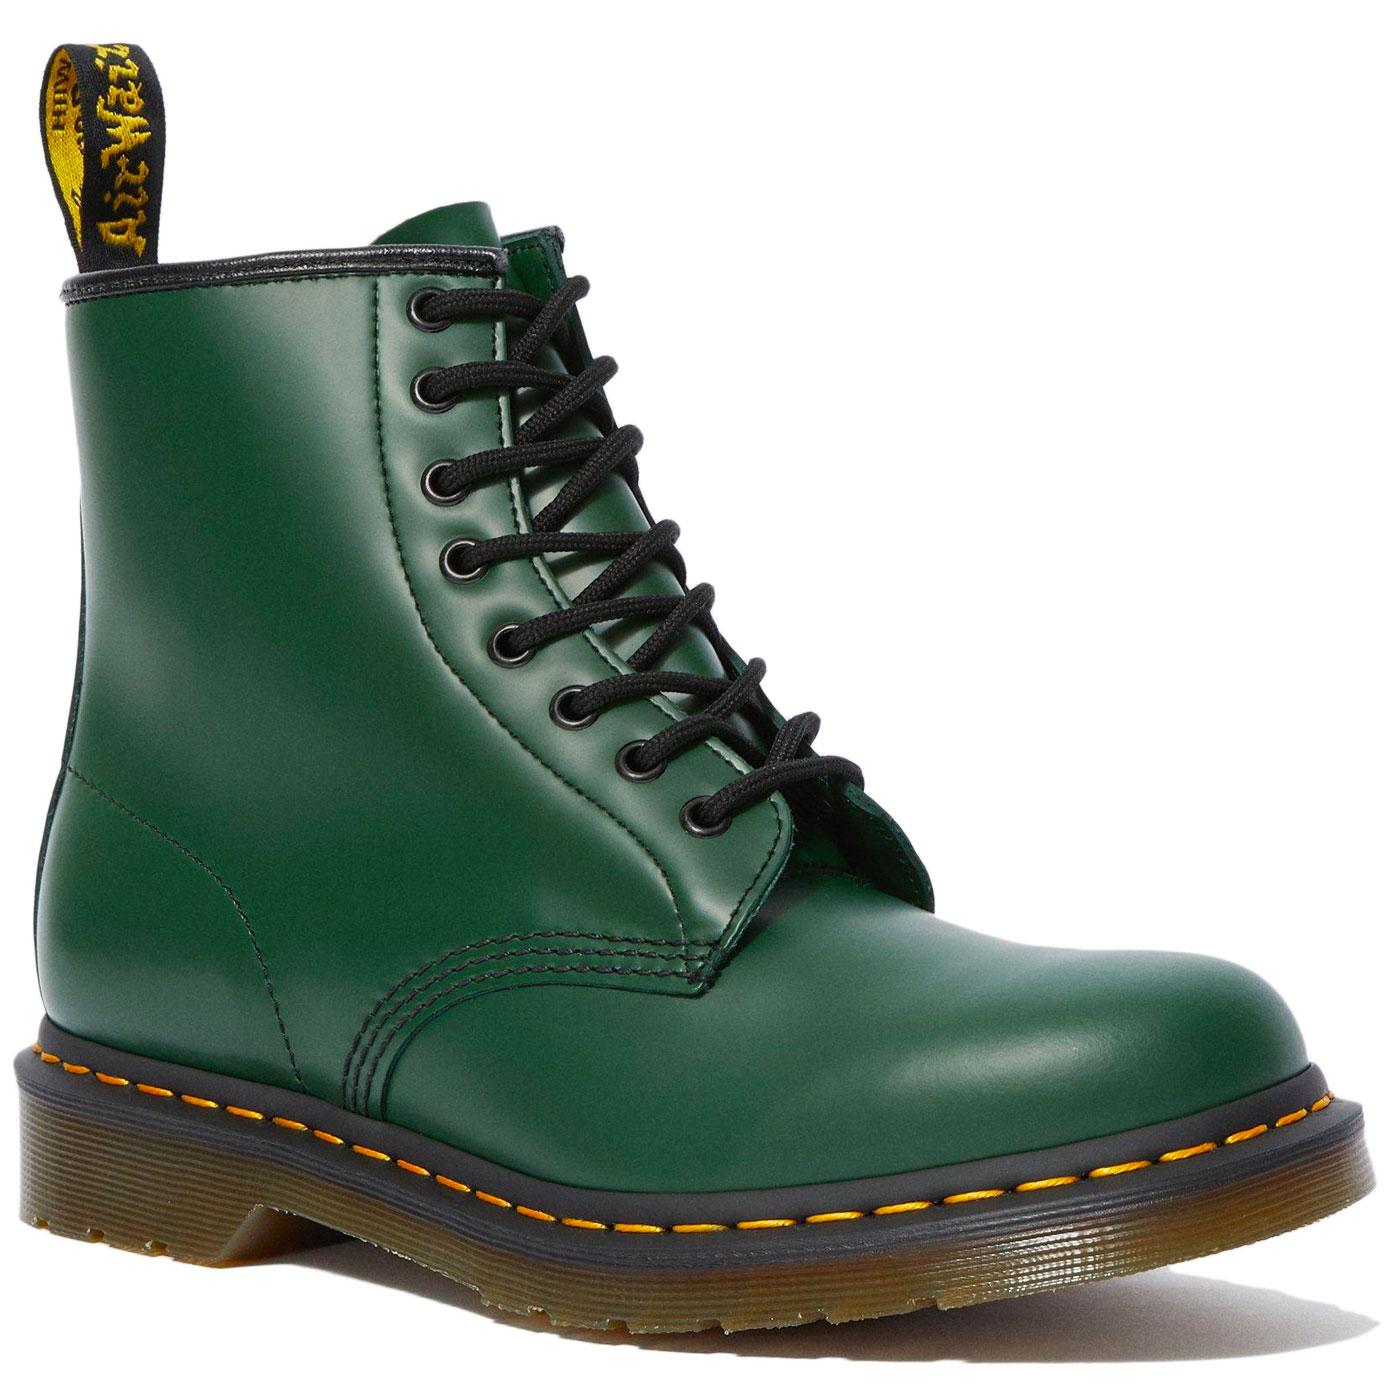 1460 Smooth DR MARTENS Men's Green Mod Boots